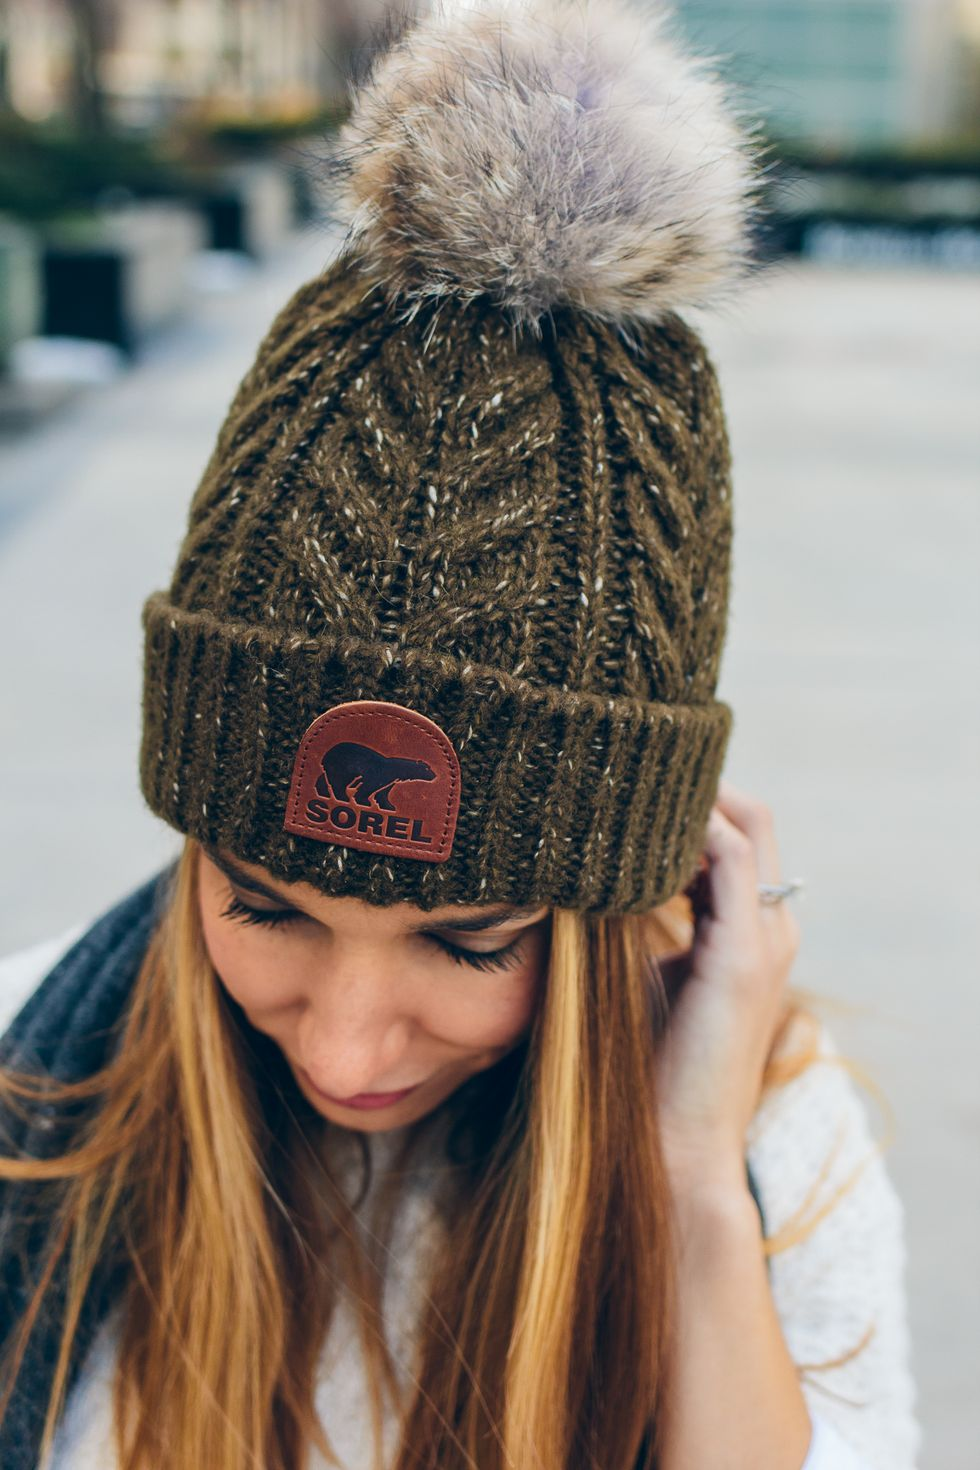 Fashionable Women Hats For Winter And Snow Outfits 14 -3609